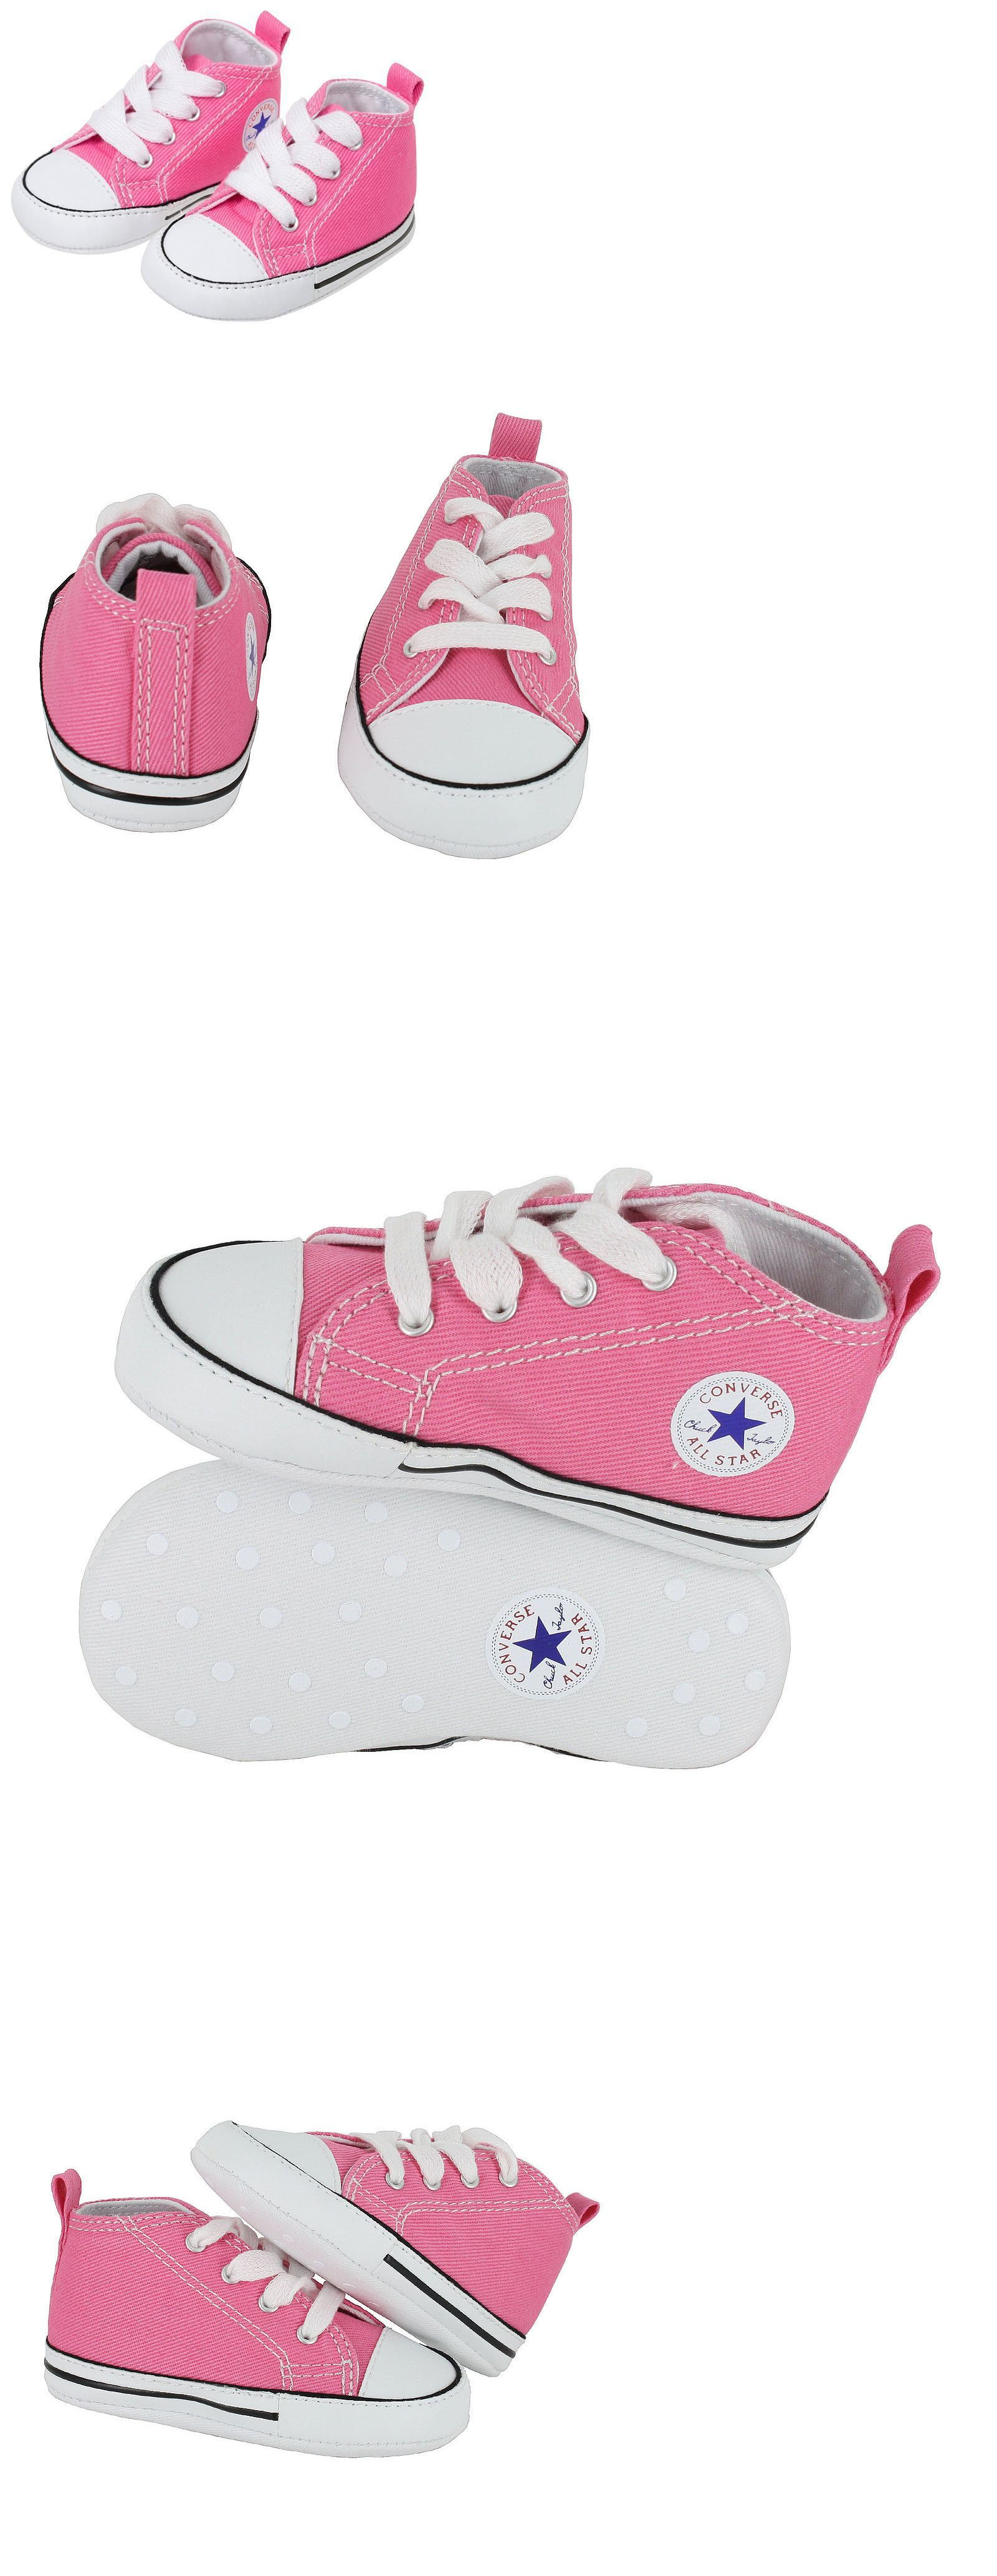 39218d979d25 Baby Shoes 147285  Converse Newborn Crib Booties Pink 88871 First All Star  Baby Shoes Sz 1-4 -  BUY IT NOW ONLY   23.45 on  eBay  shoes  converse   newborn ...